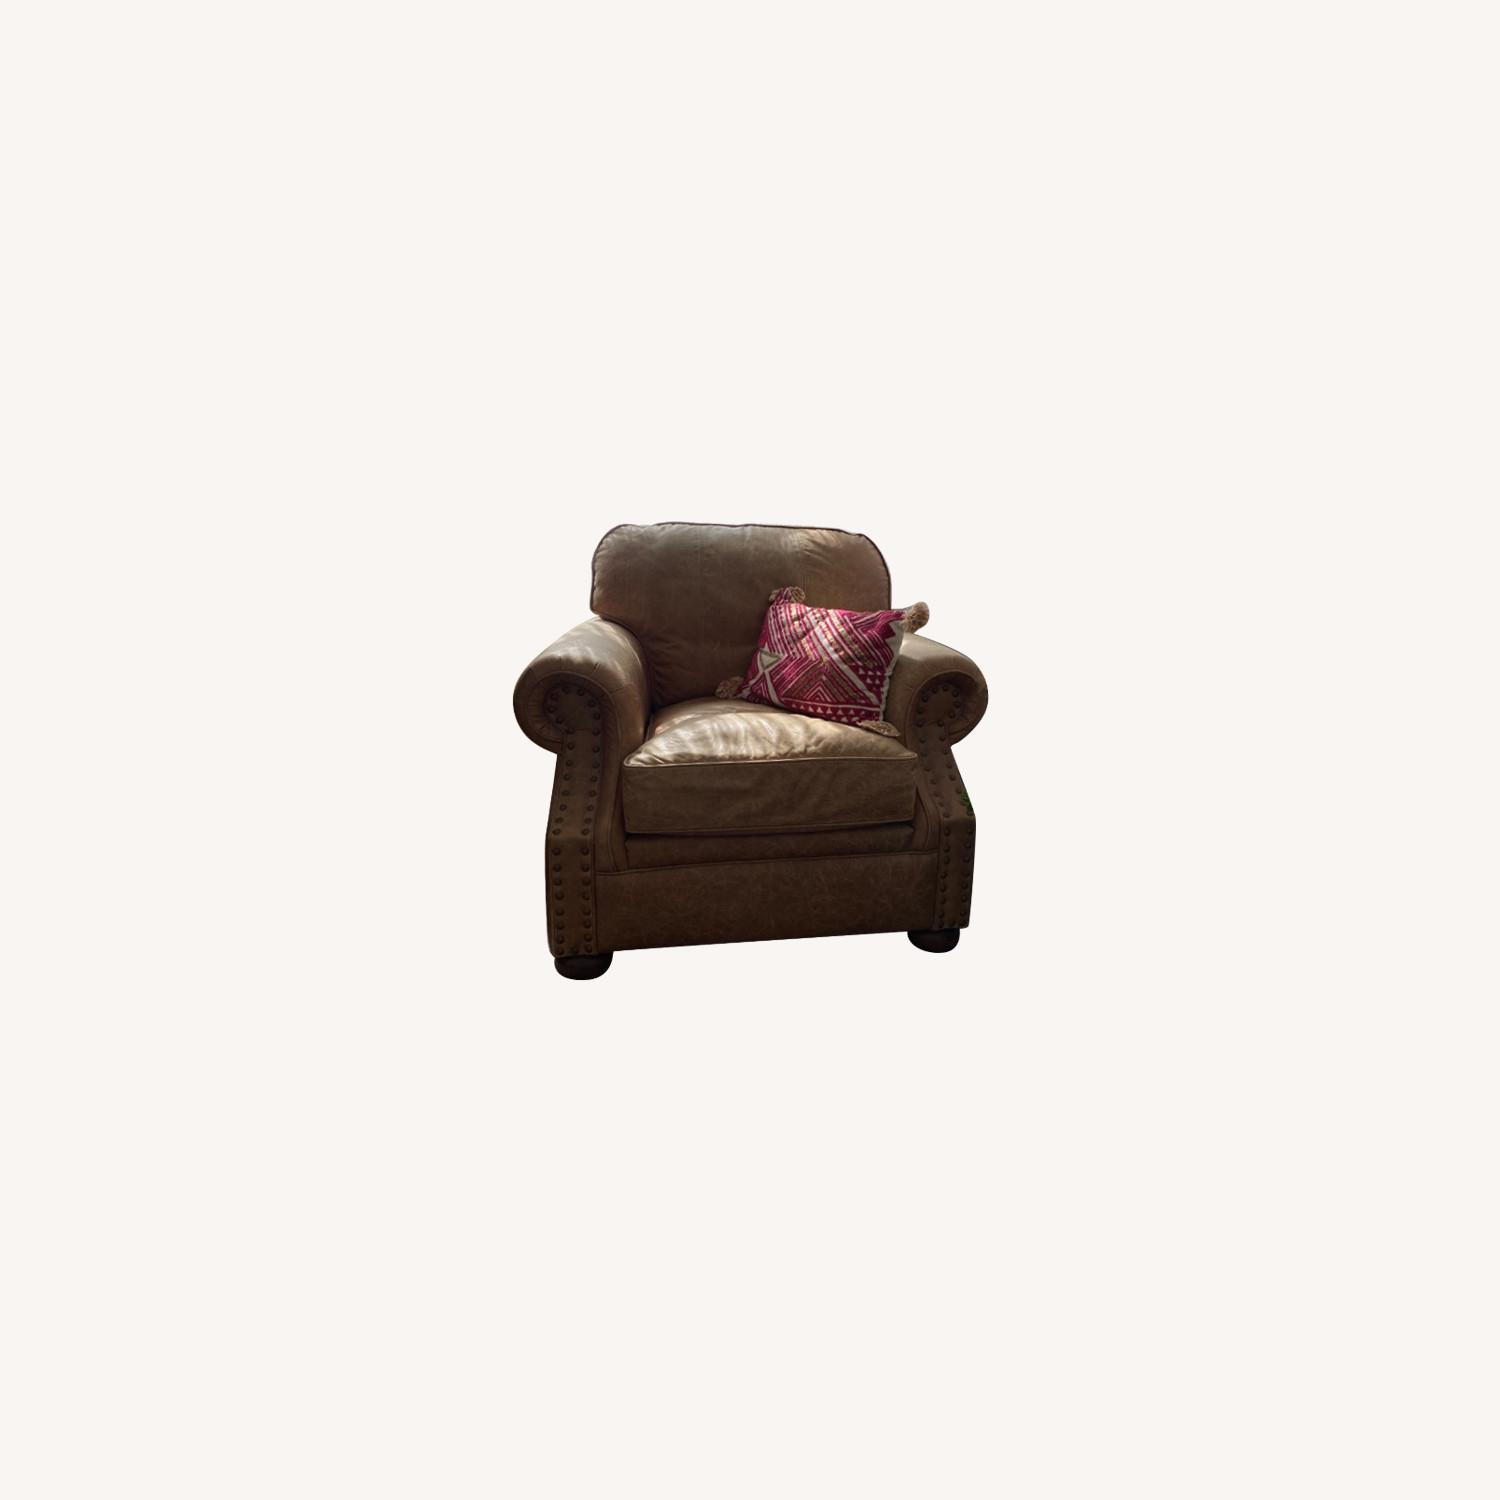 Ethan Allen Cognac Leather Chair and Ottoman - image-0